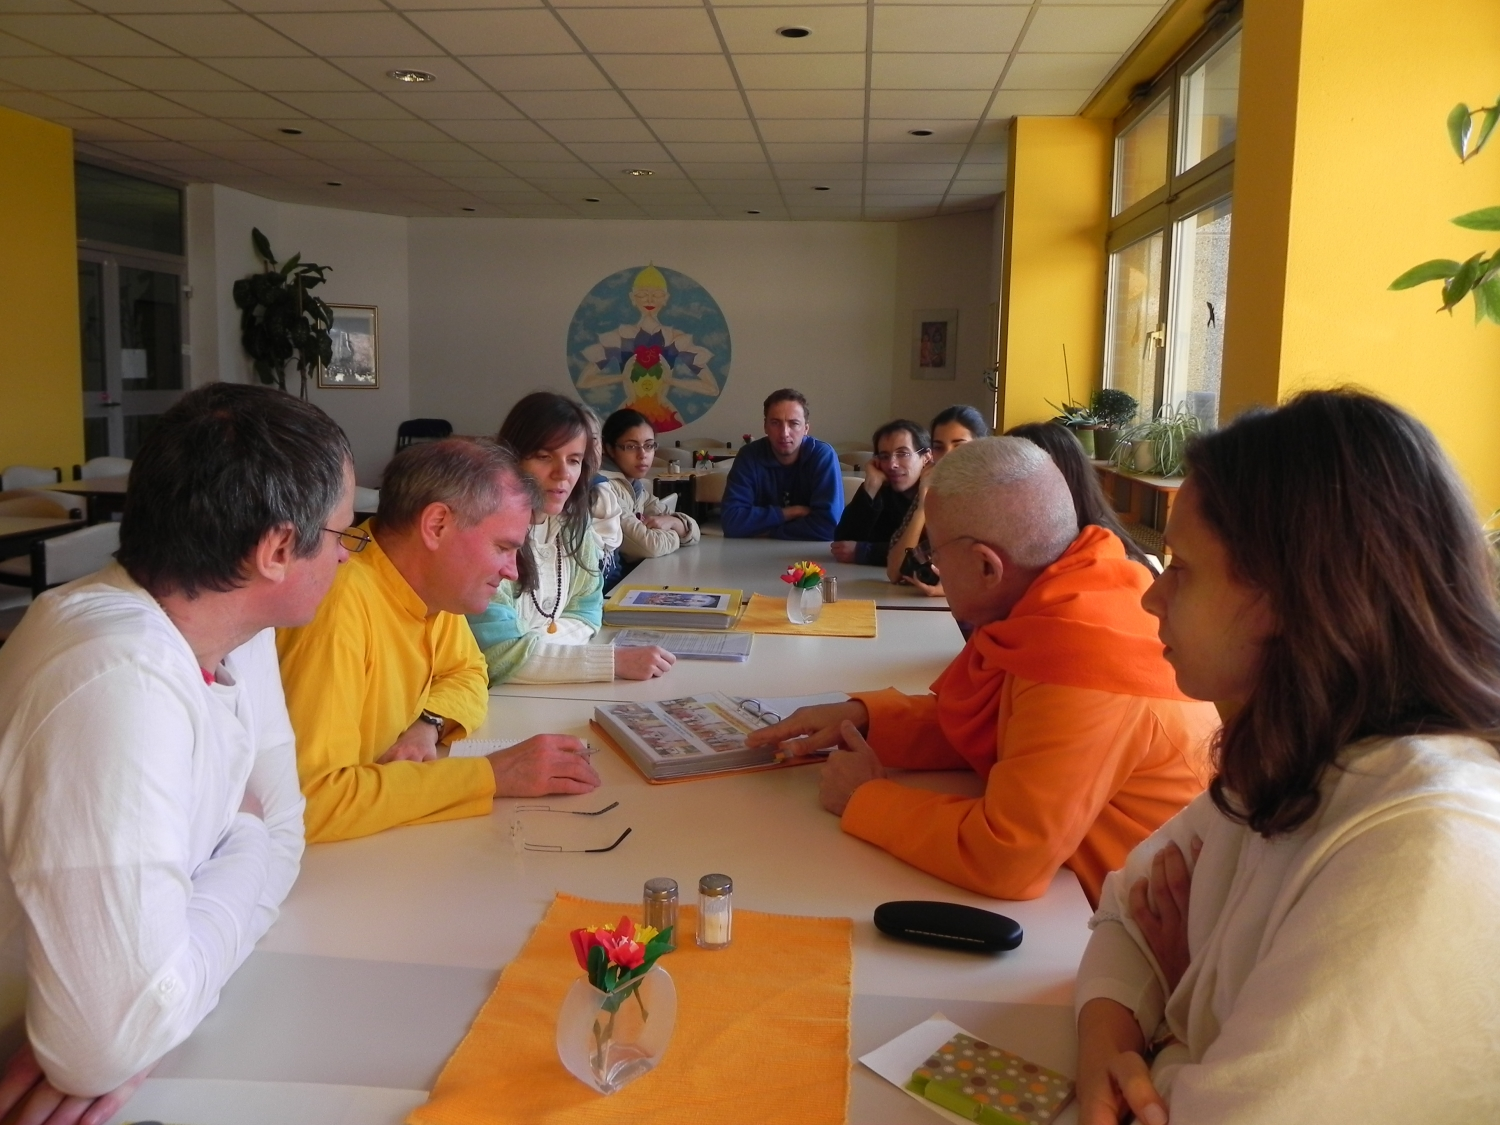 Meeting with Master Sukadev Bretz - Yoga Vidya, Bad Meinberg, Germany - 2012, March